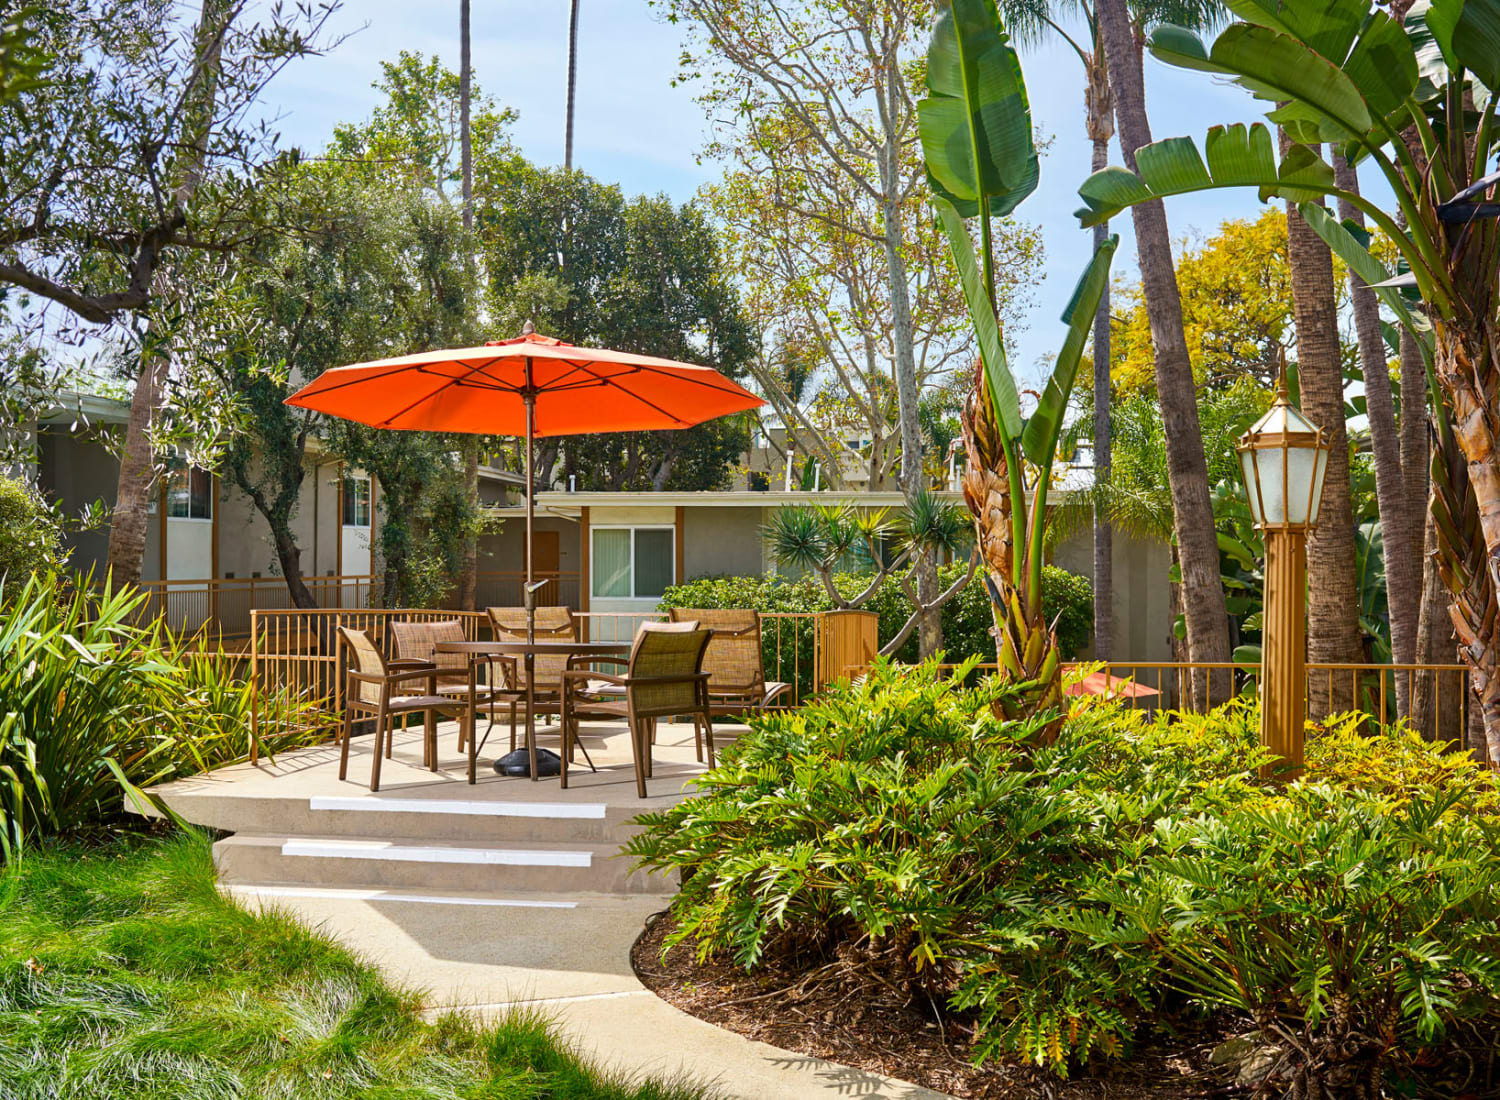 Shaded seating area surrounded by lush flora at West Park Village in Los Angeles, California